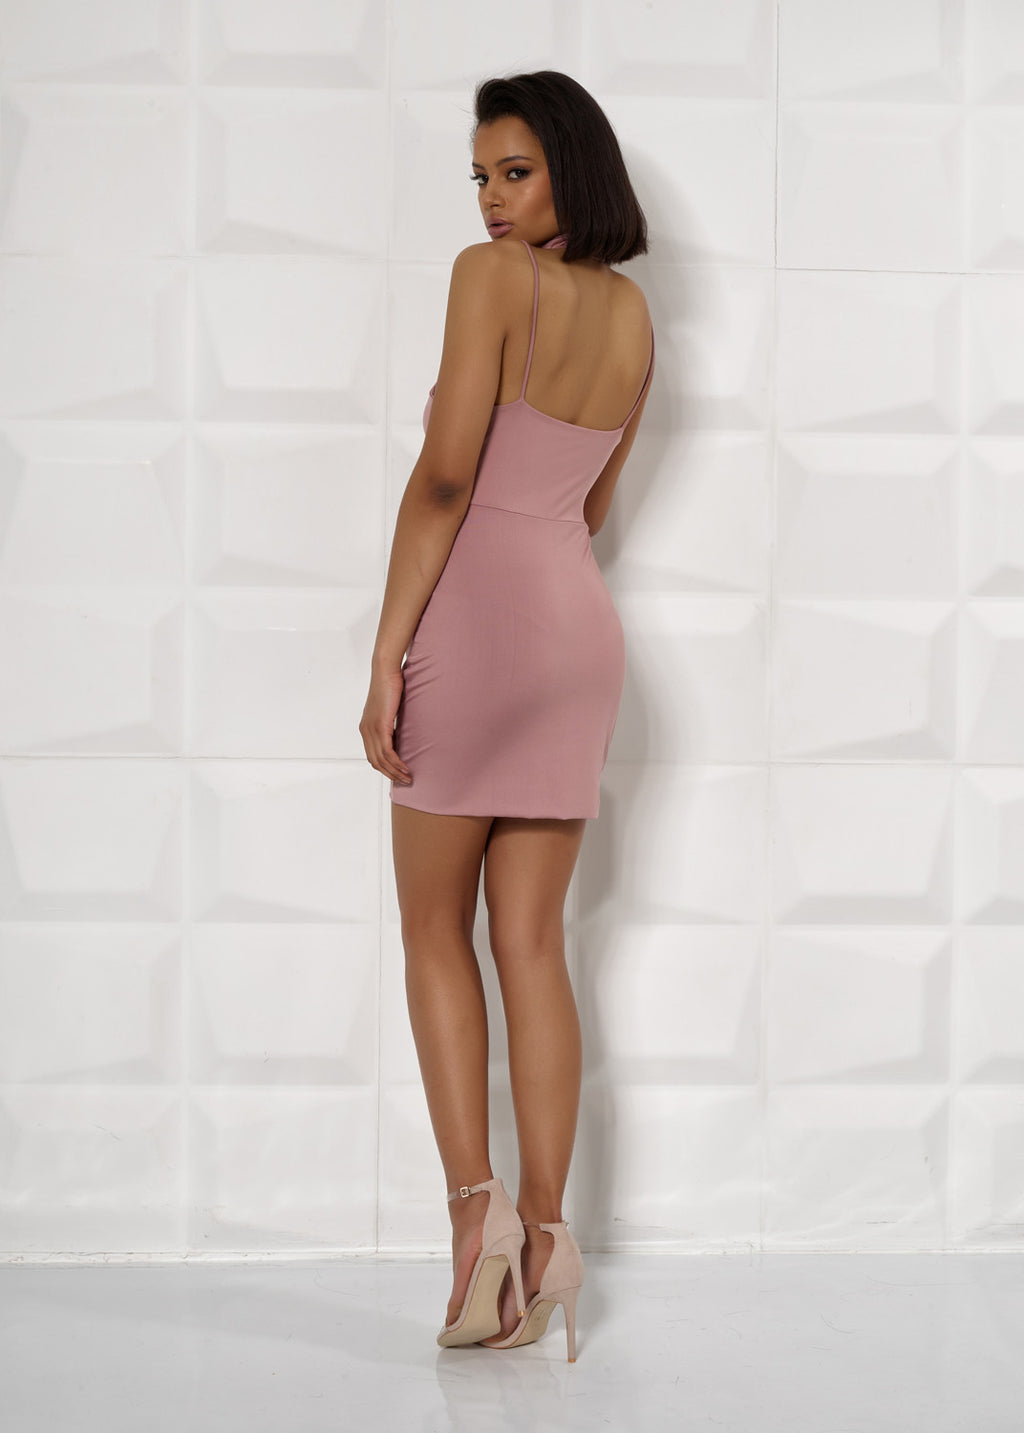 'RAVEN' POWDER PINK, LACE UP LEG, MINI DRESS